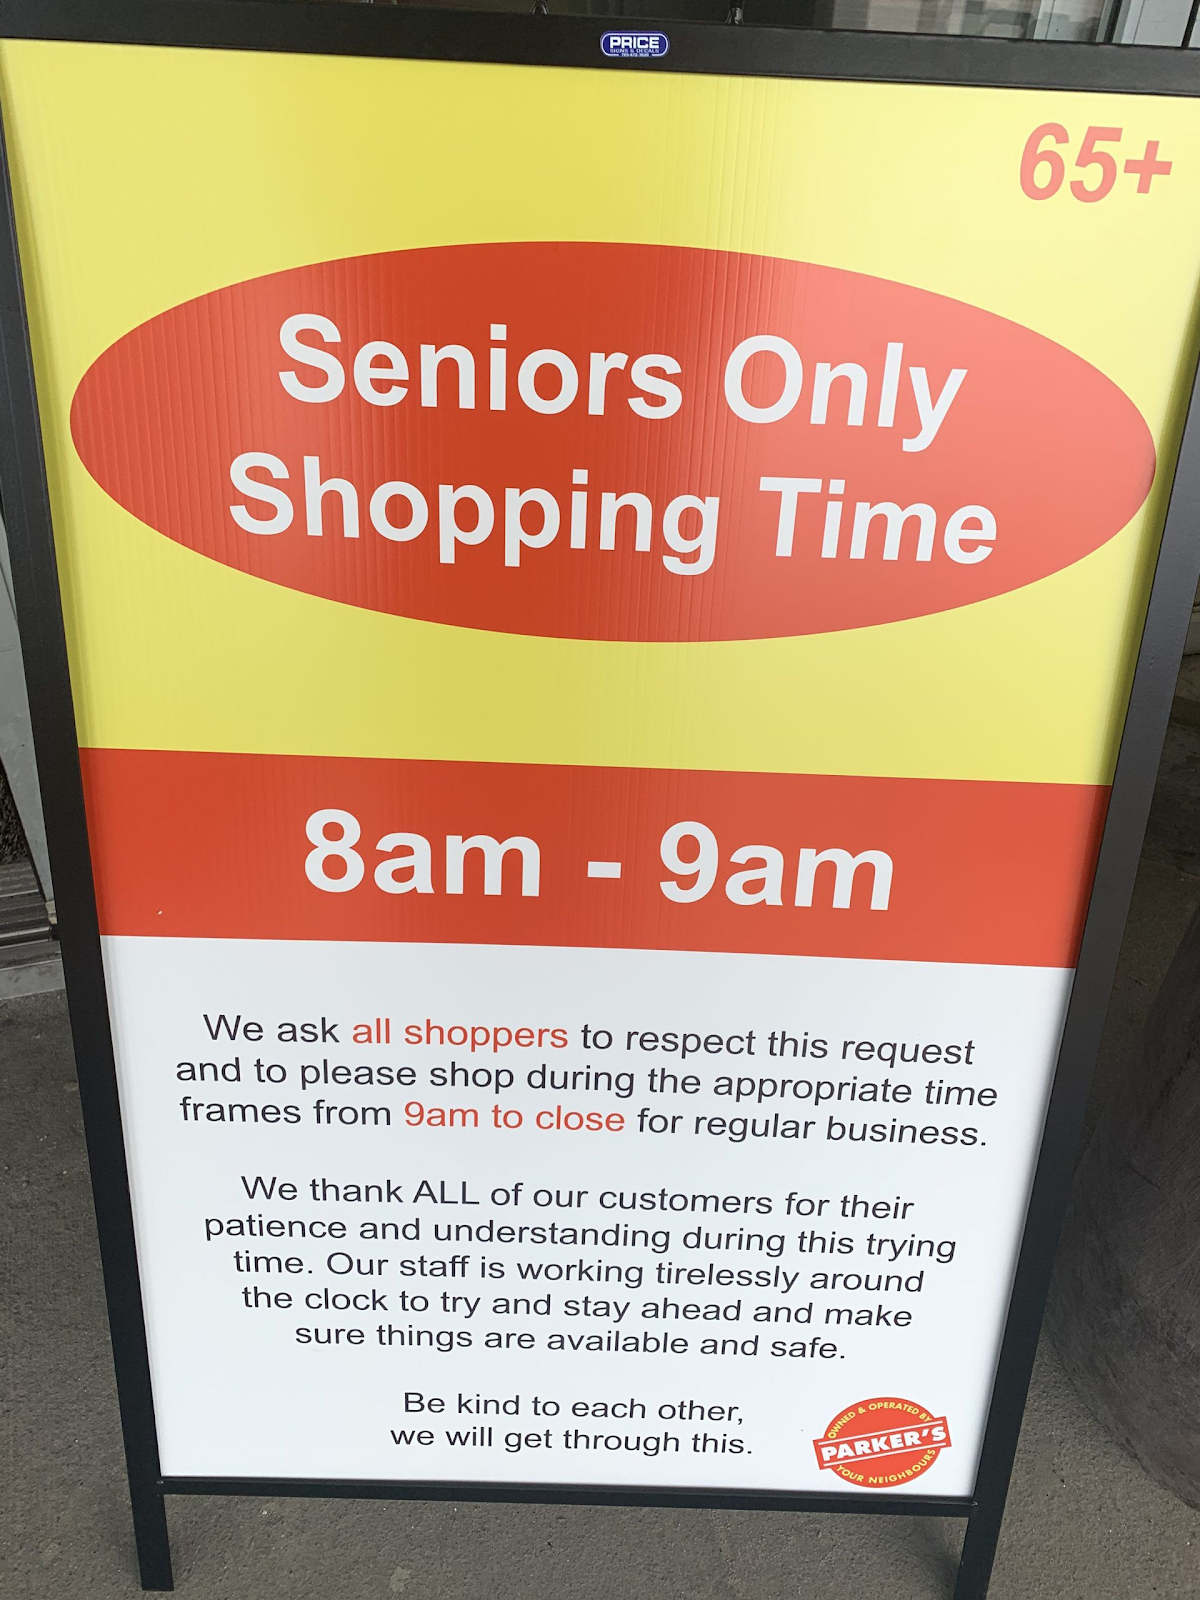 Grocery store sign for seniors only shopping time